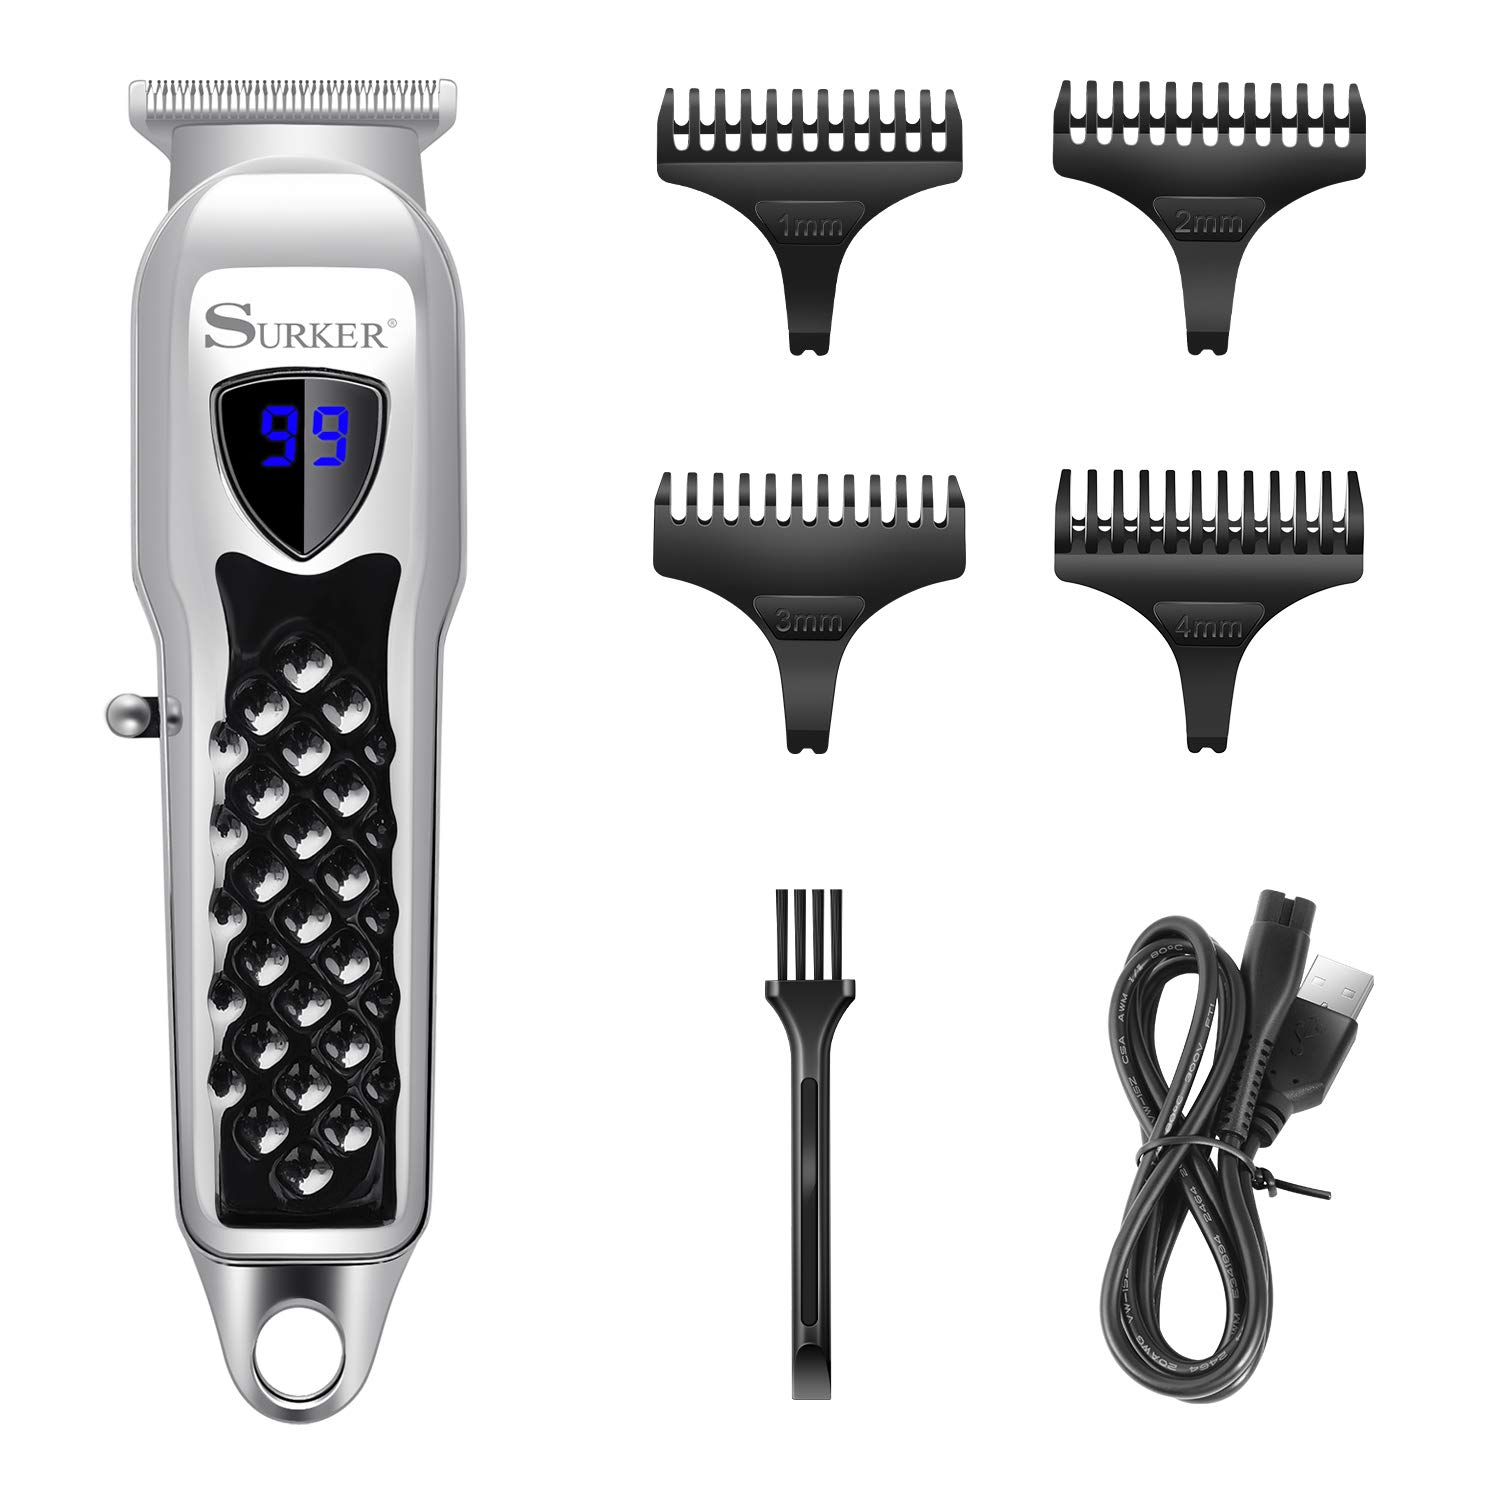 Surker Hair Trimmer Beard Trimmer Hair clippers for Men Pro Cordless T-Blade Precision Trimmer For Hair Carving Shaver Rechargeable